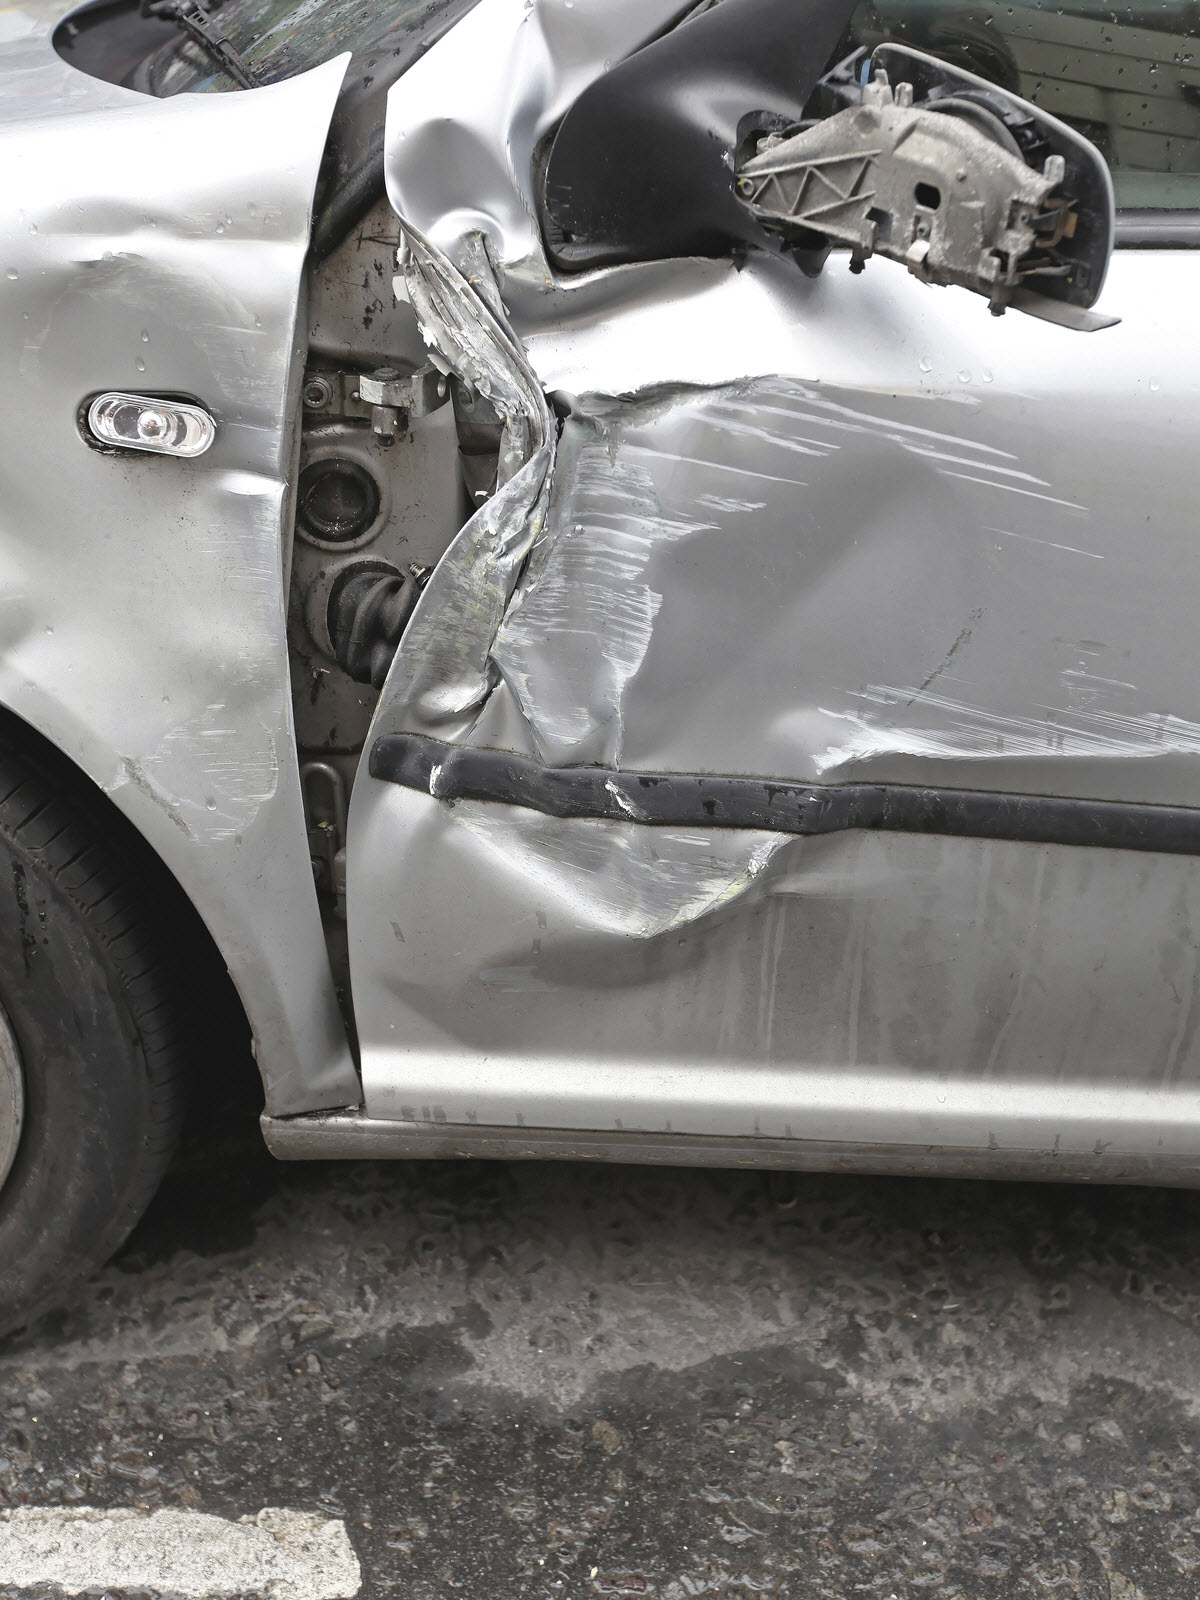 What First Steps You Should Take after a Car Accident in South Florida